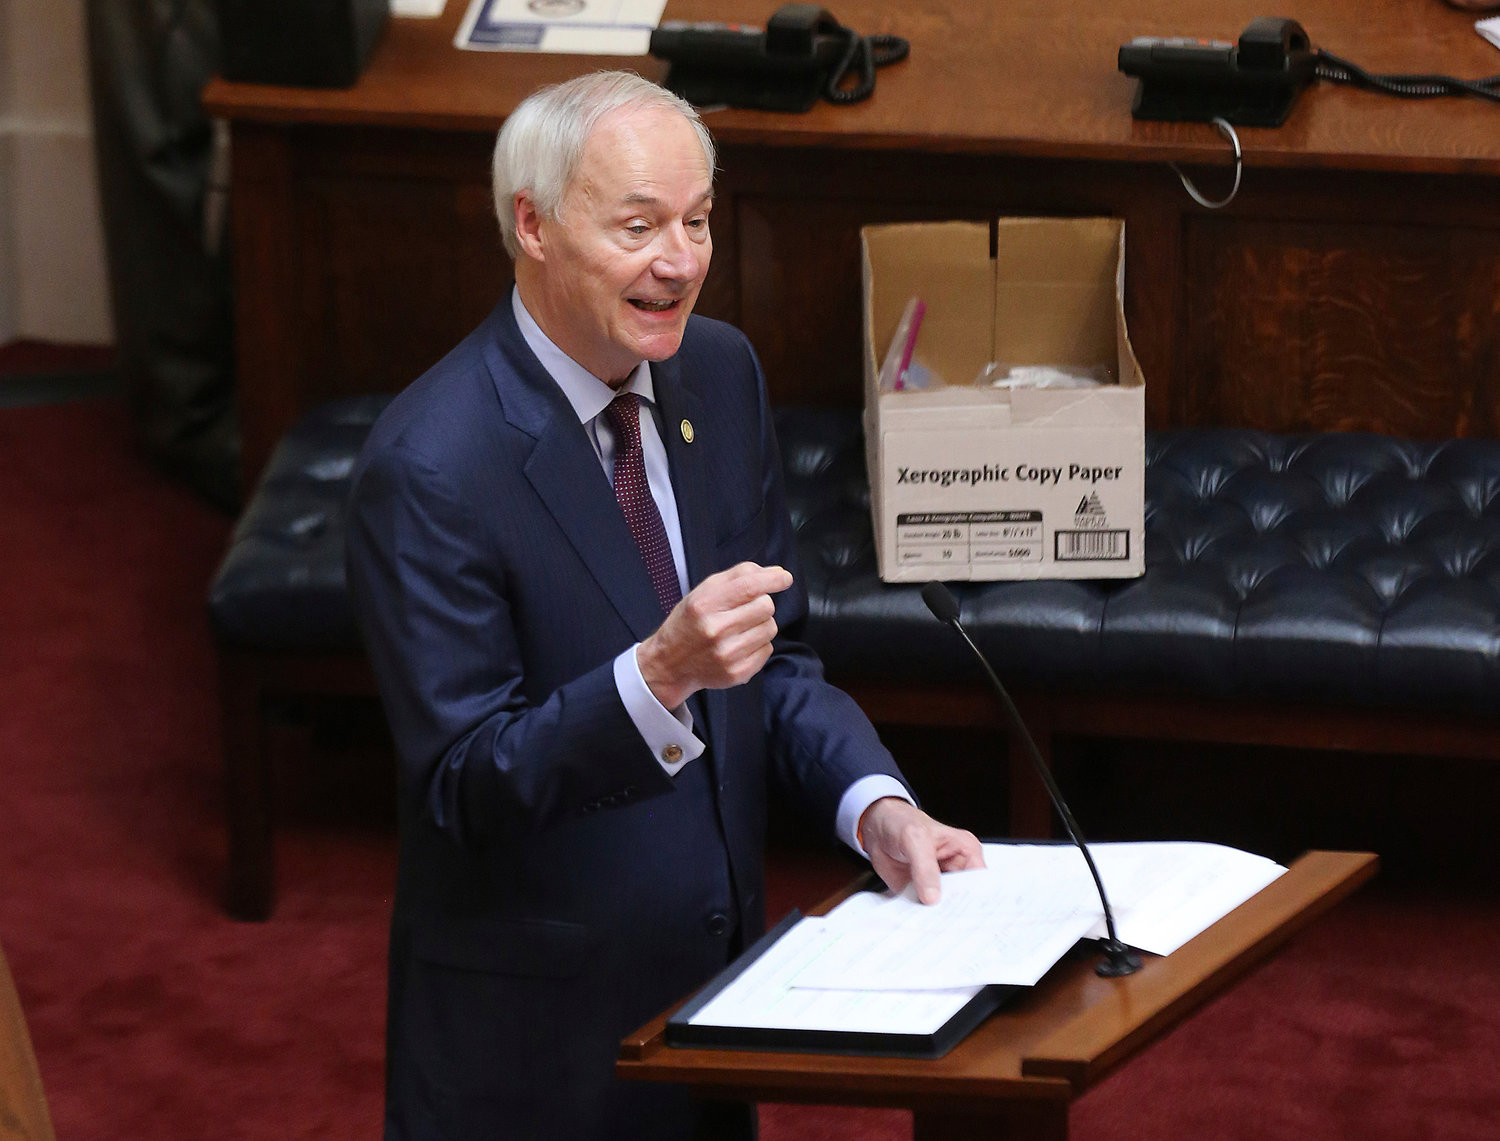 FILE - In this April 8, 2020 photo, Arkansas Gov. Asa Hutchinson gives the State of the State in the senate chamber of the state Capitol in Little Rock, Ark. Hutchinson vetoed legislation that would have made his state the first to ban gender confirming treatments for transgender youth. (Tommy Metthe/Arkansas Democrat-Gazette via AP, File)